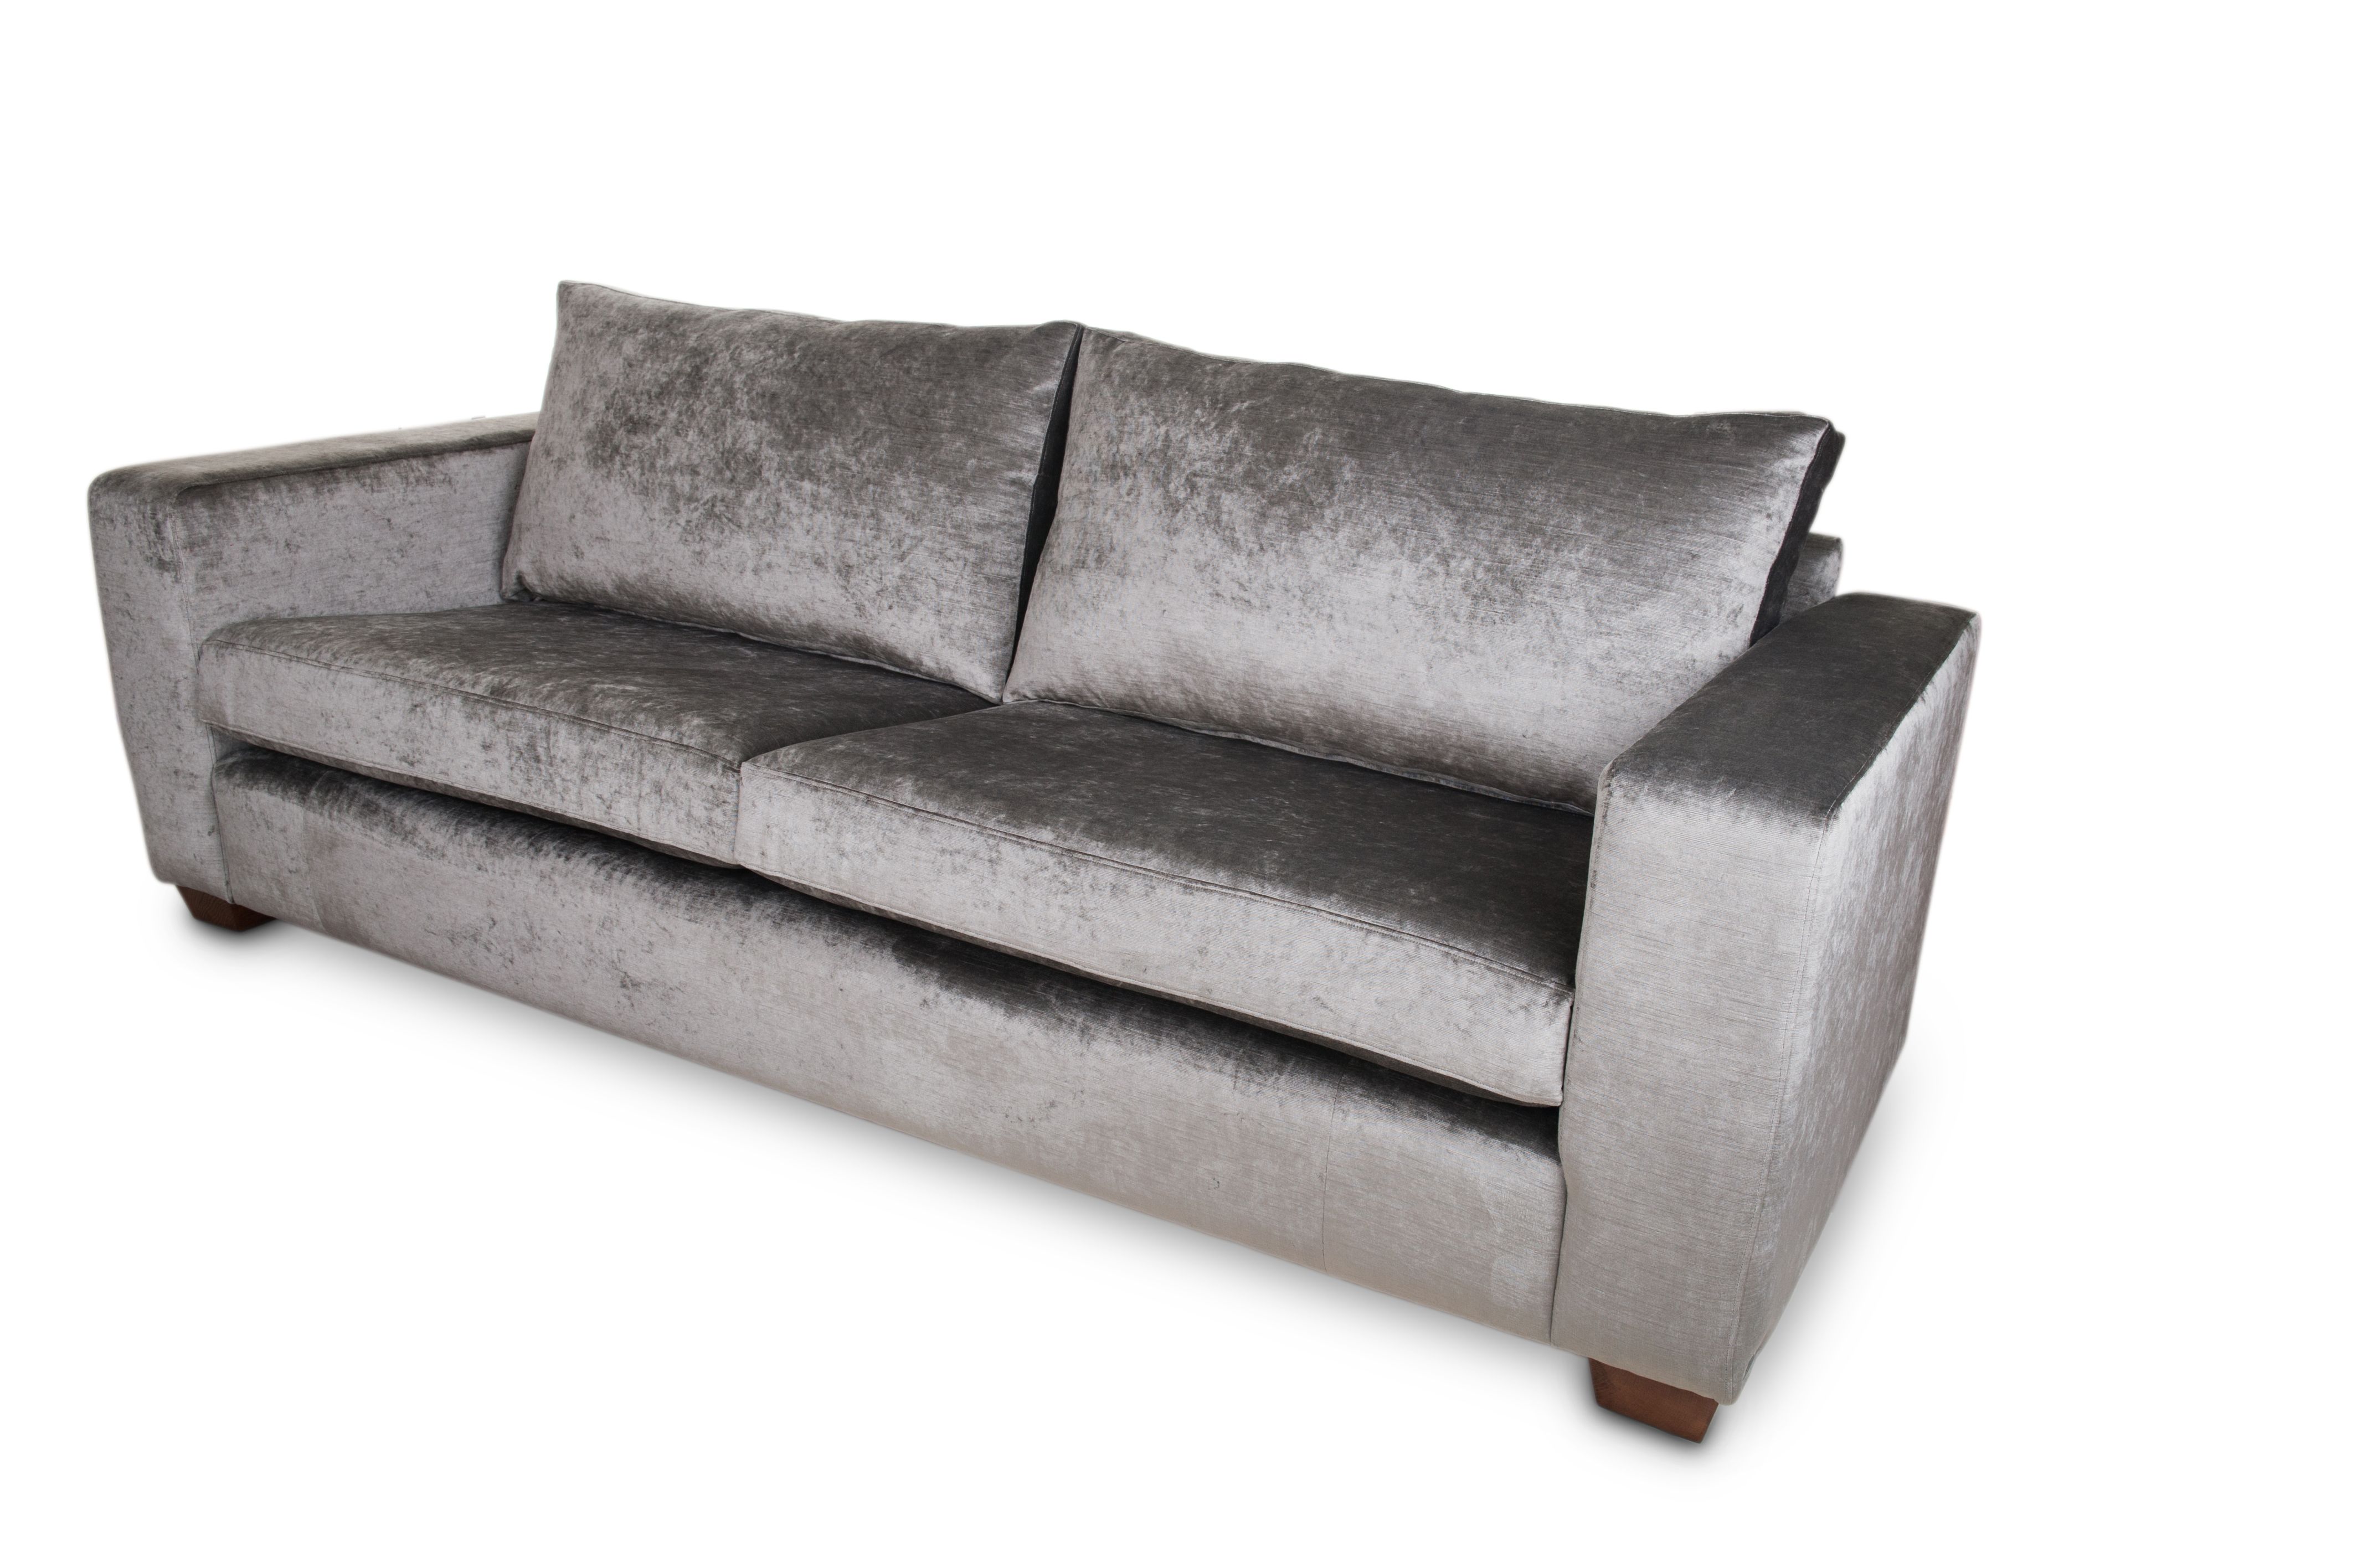 Marlow sofas and chairs